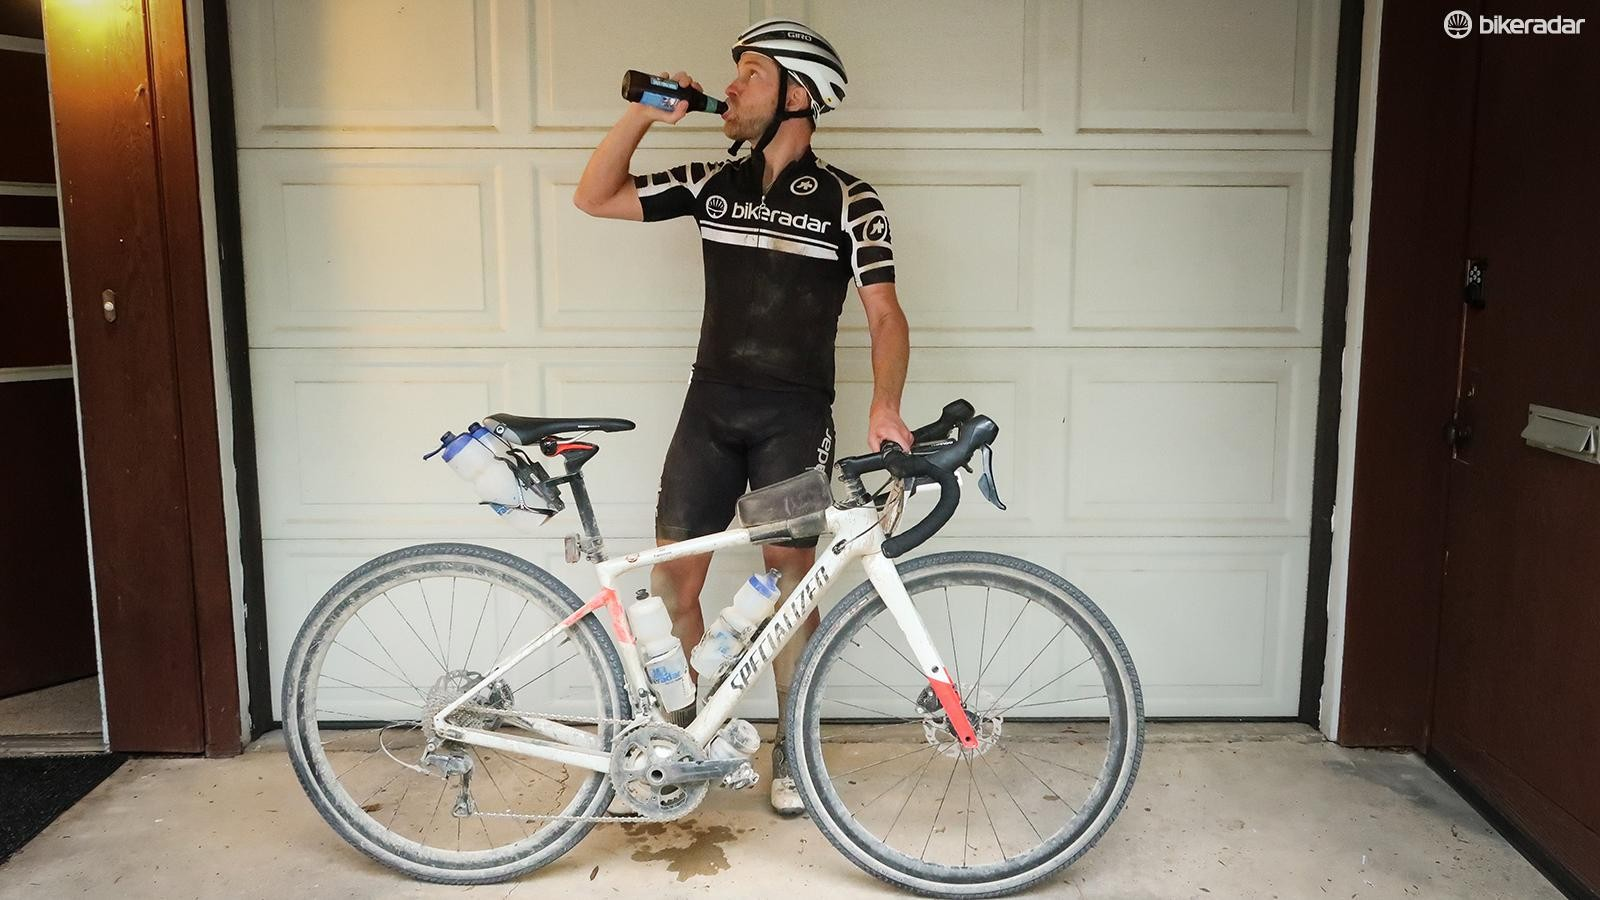 Done and dusted. Freestate Brewing's Dirty Kanza Kölsch is a superb recovery drink